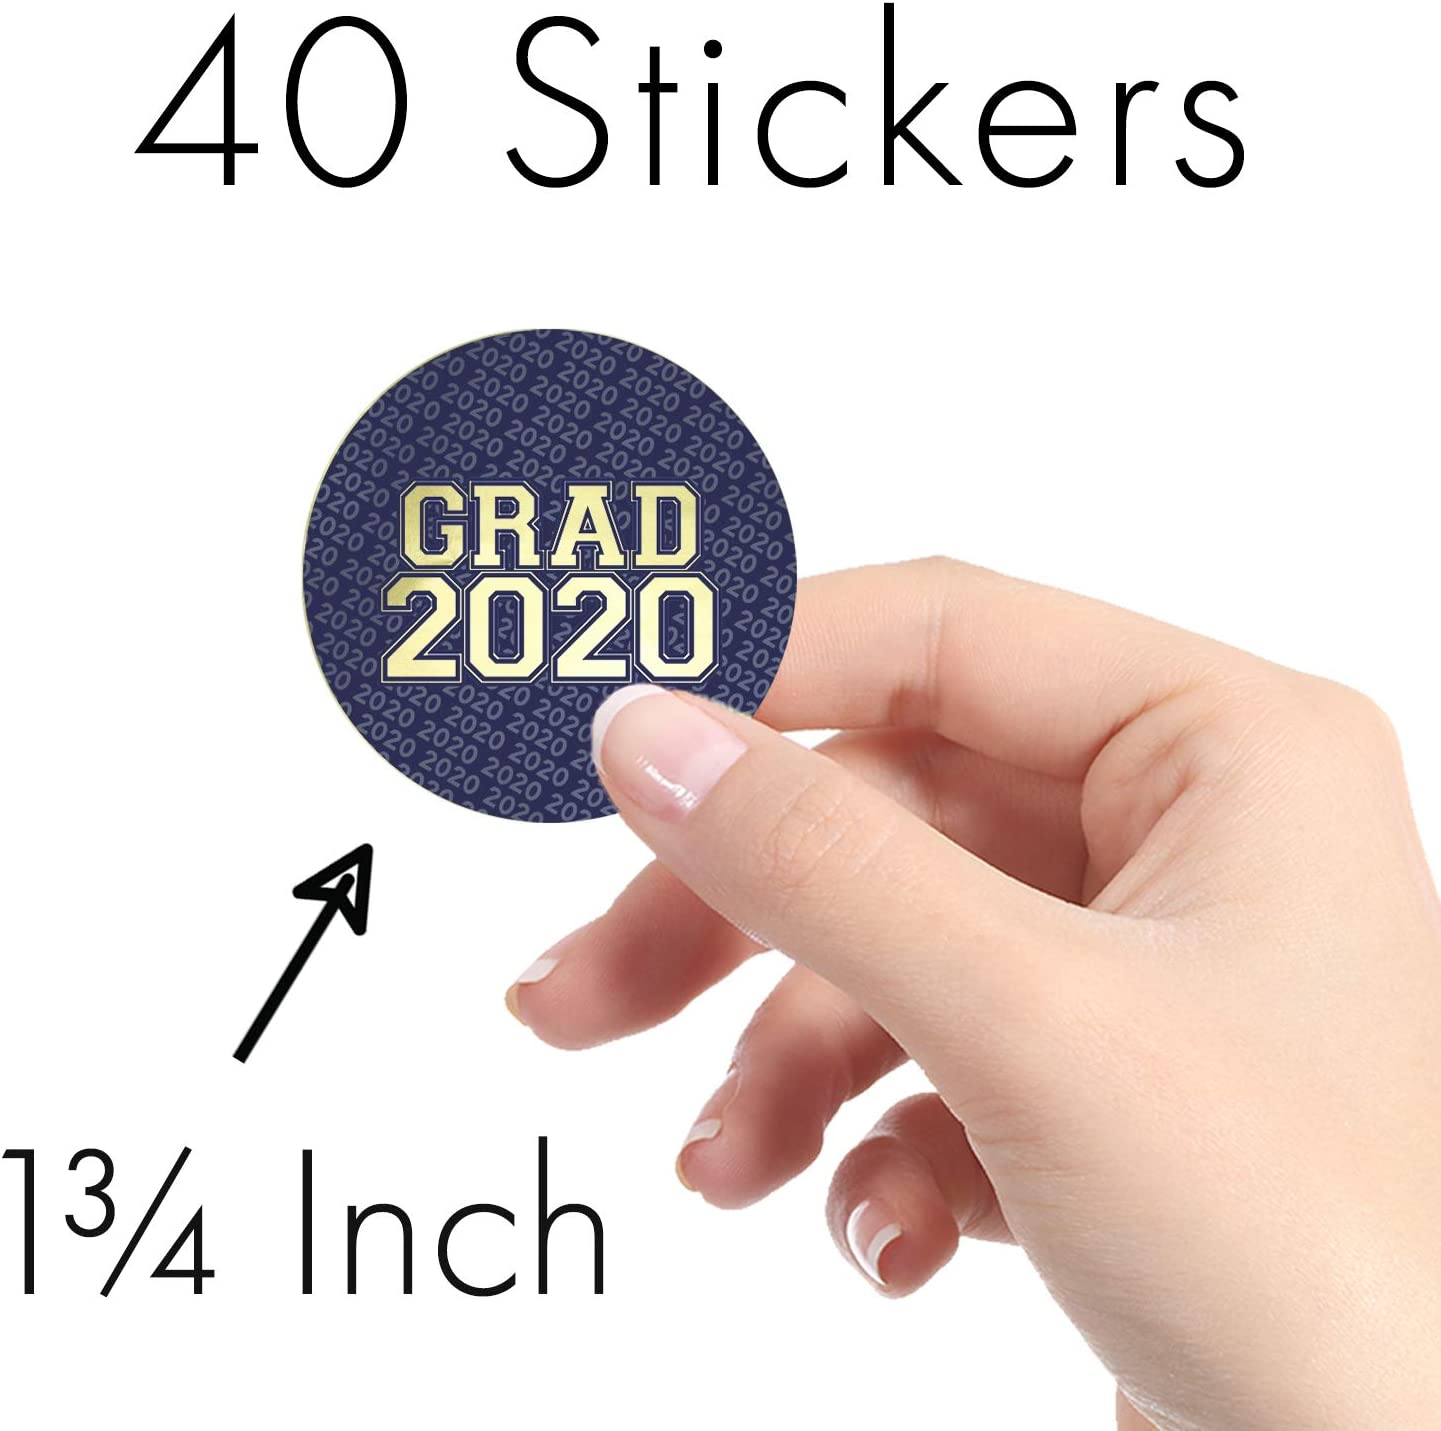 Green 1.75 in 40 Stickers Class of 2020 Graduation Party Favor Labels